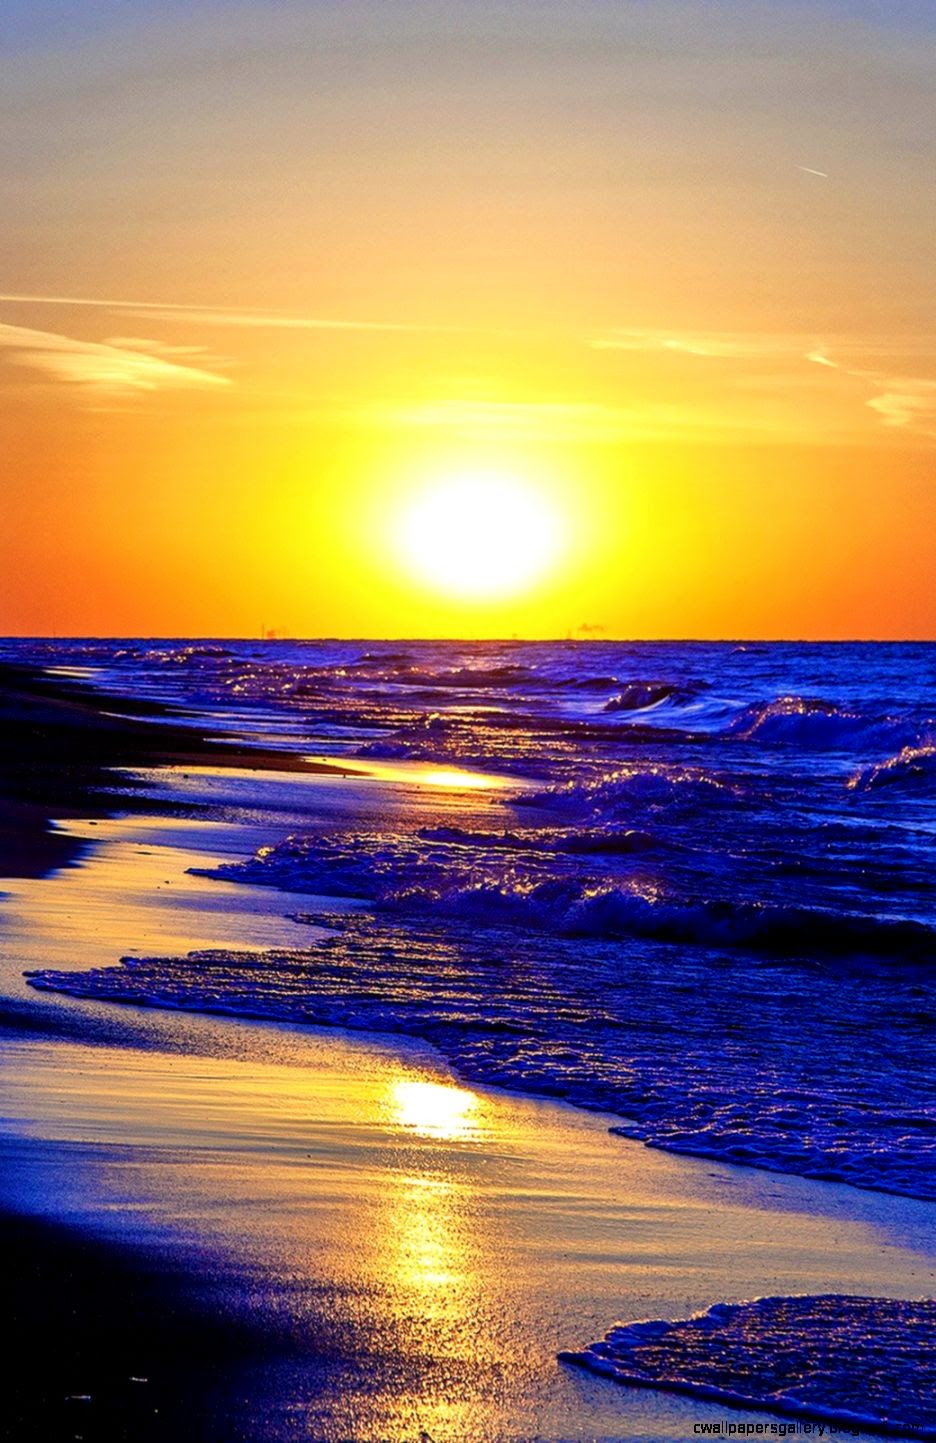 Iphone 5 Sunset Wallpaper Hd | Wallpapers Gallery